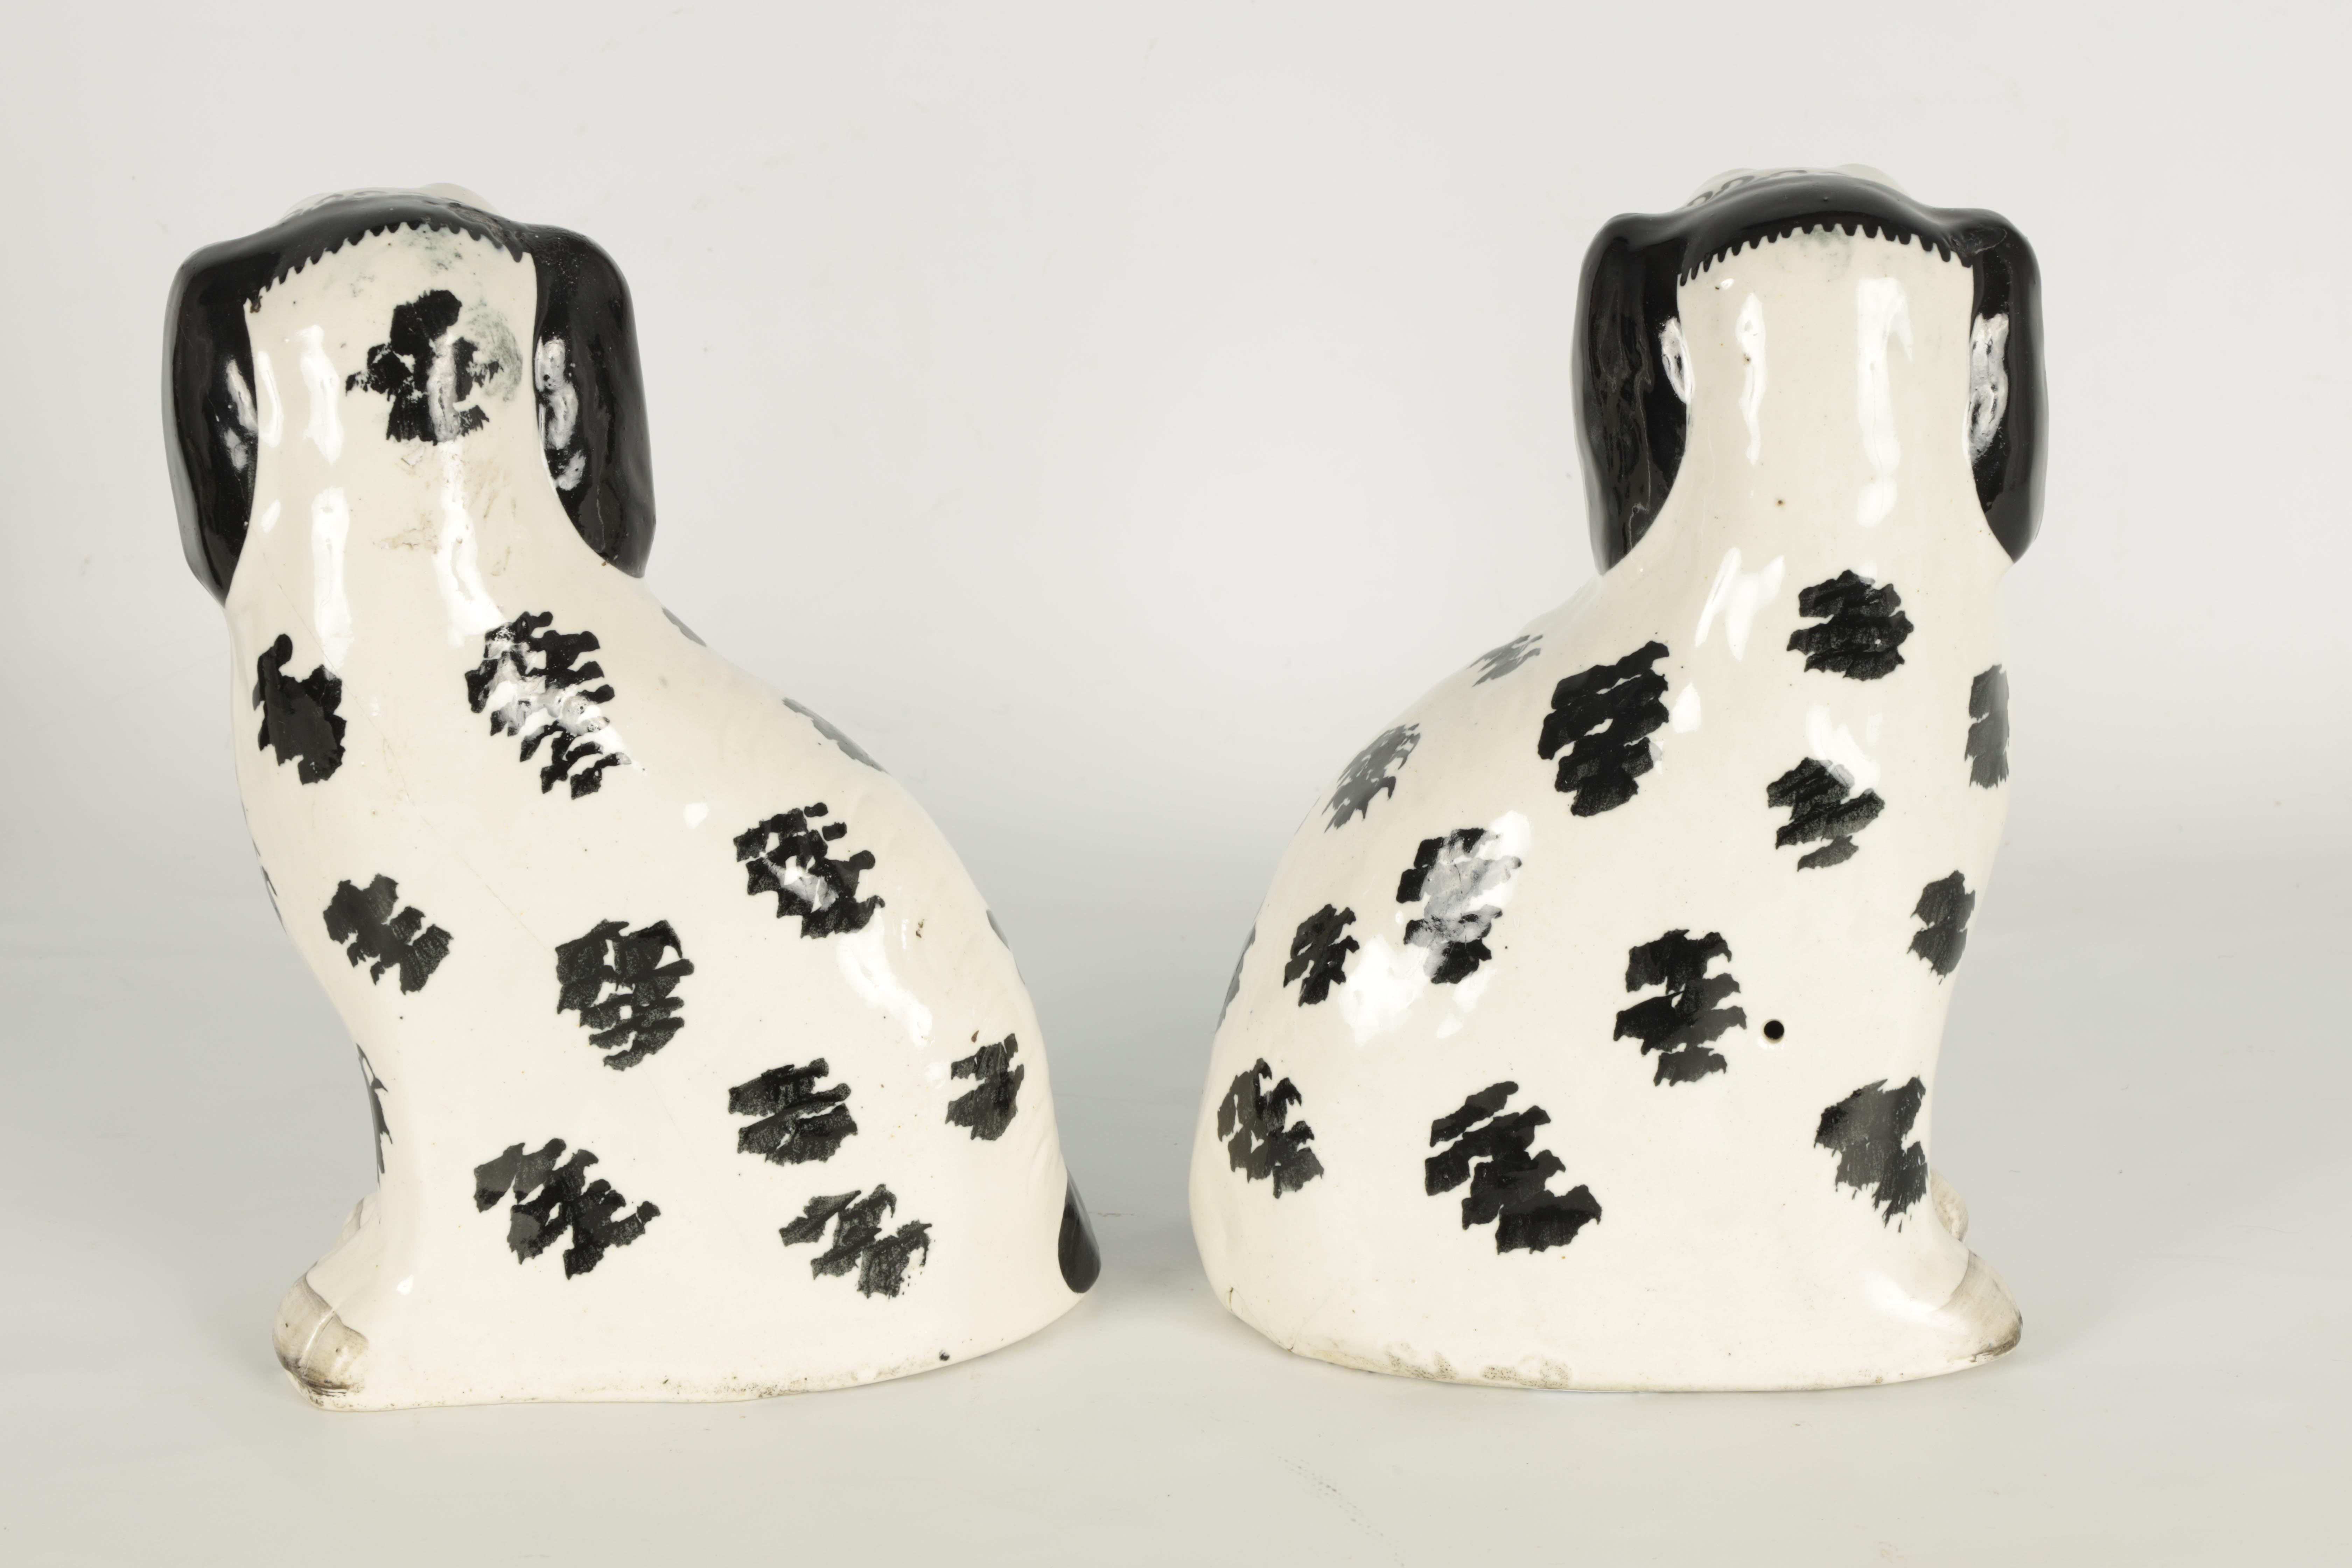 A PAIR OF 19TH CENTURY STAFFORDSHIRE 'DISRAELI CURL' SPANIELS 23cm high - Image 5 of 11